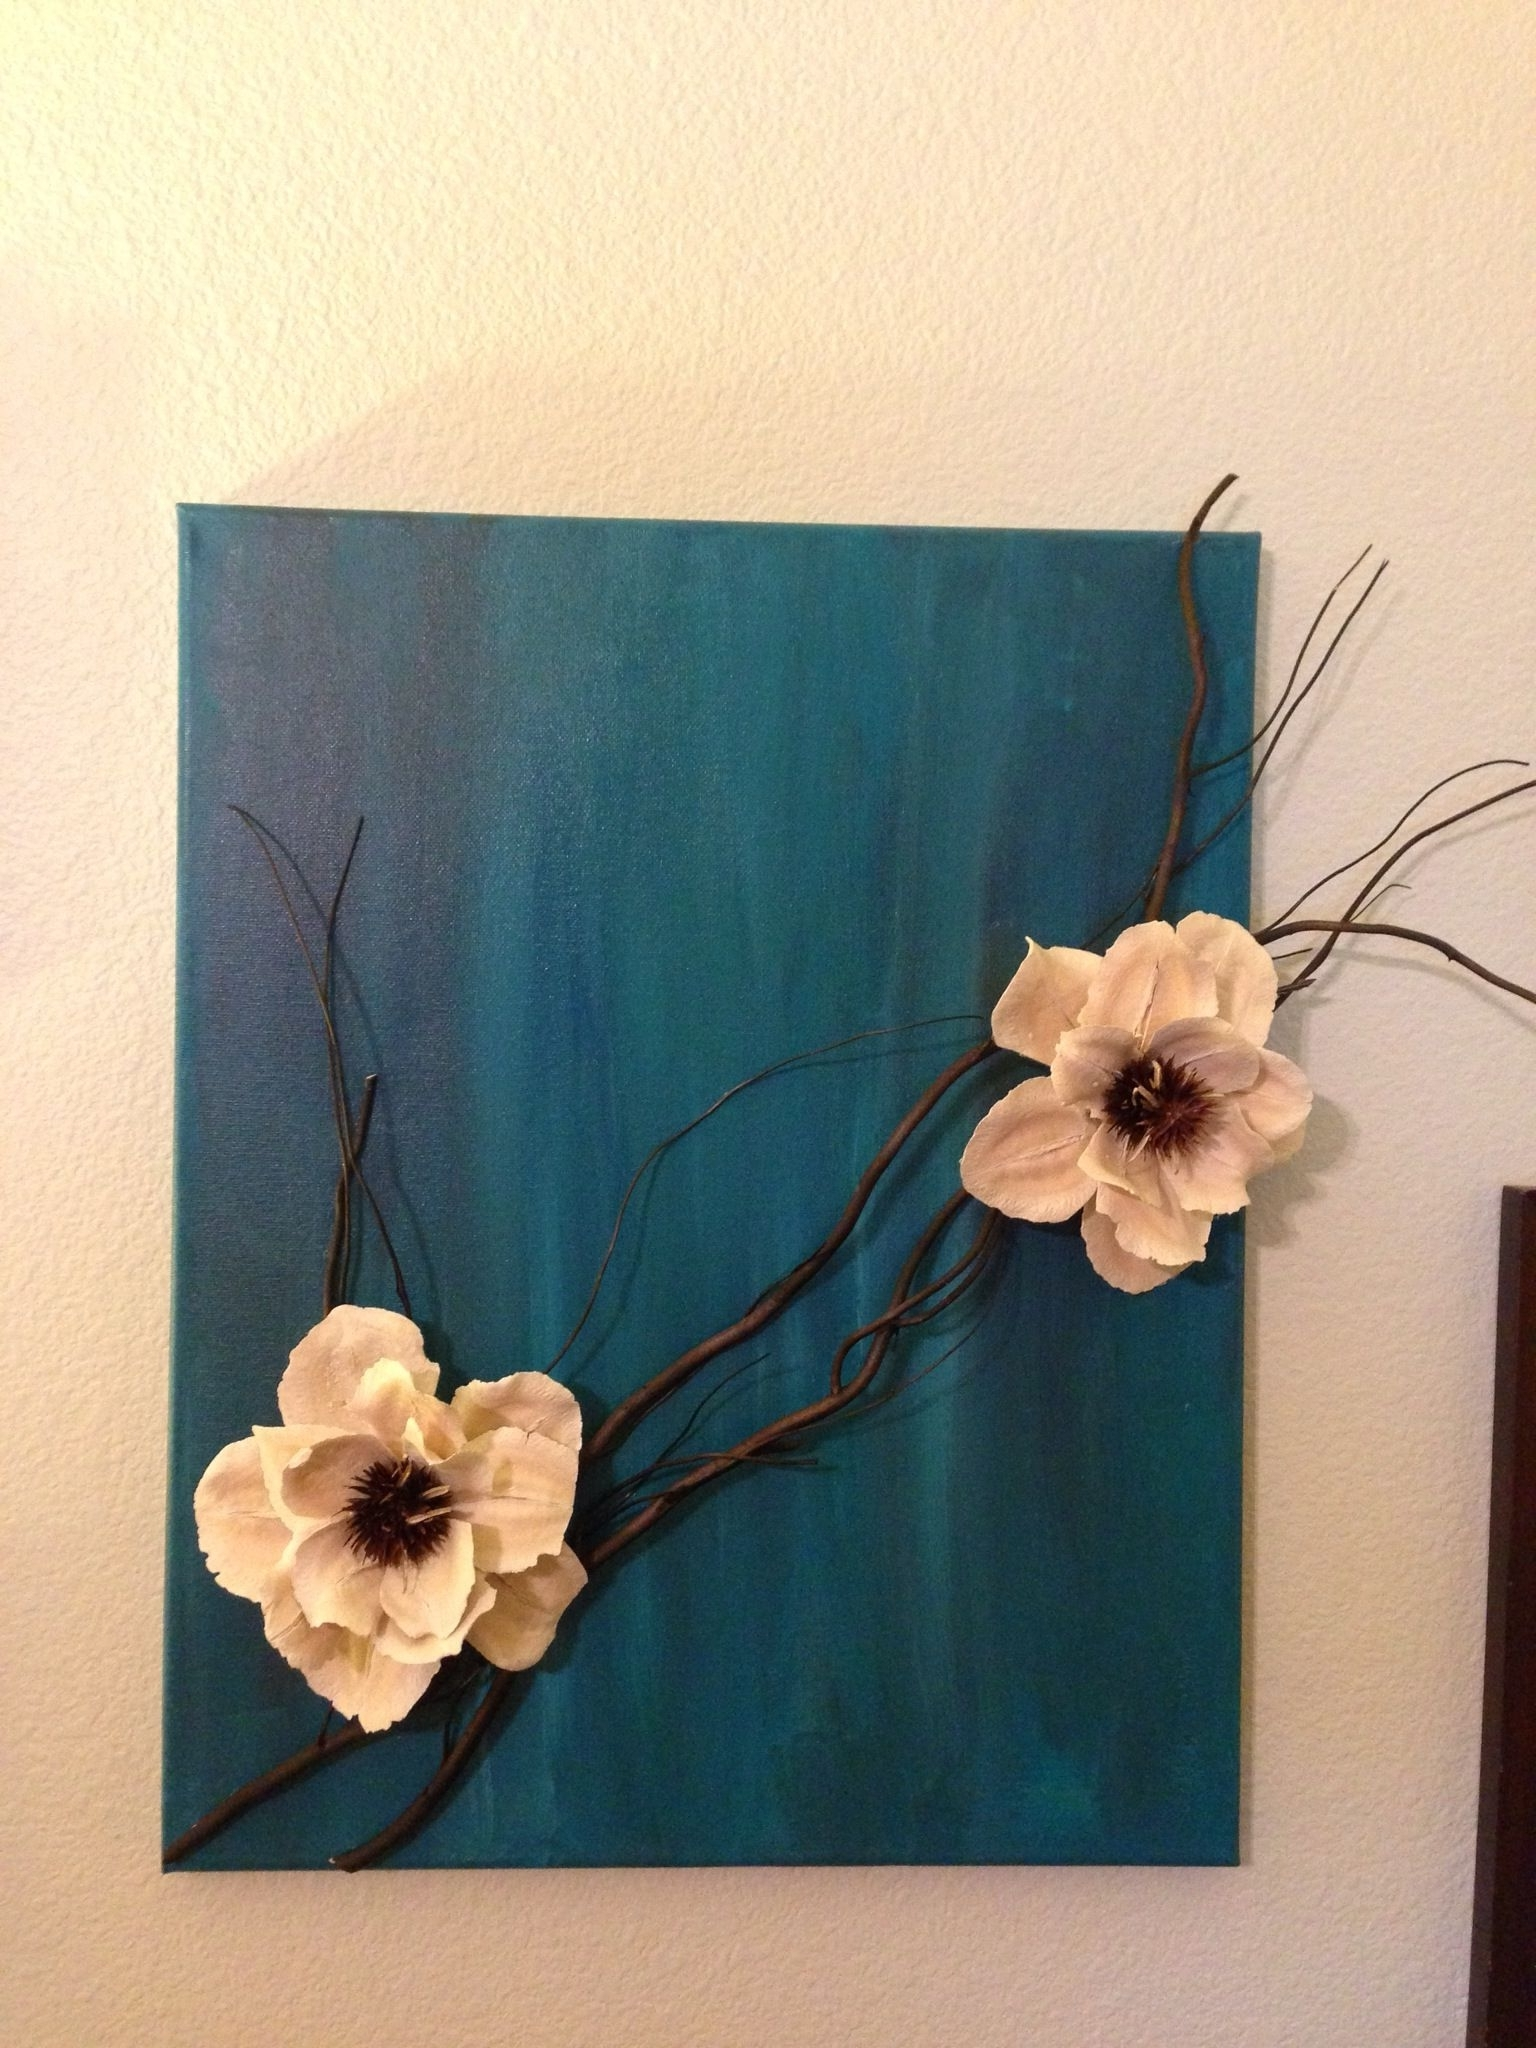 Blossom White 3D Wall Art Intended For Popular Http://media Cache Ec (View 4 of 15)